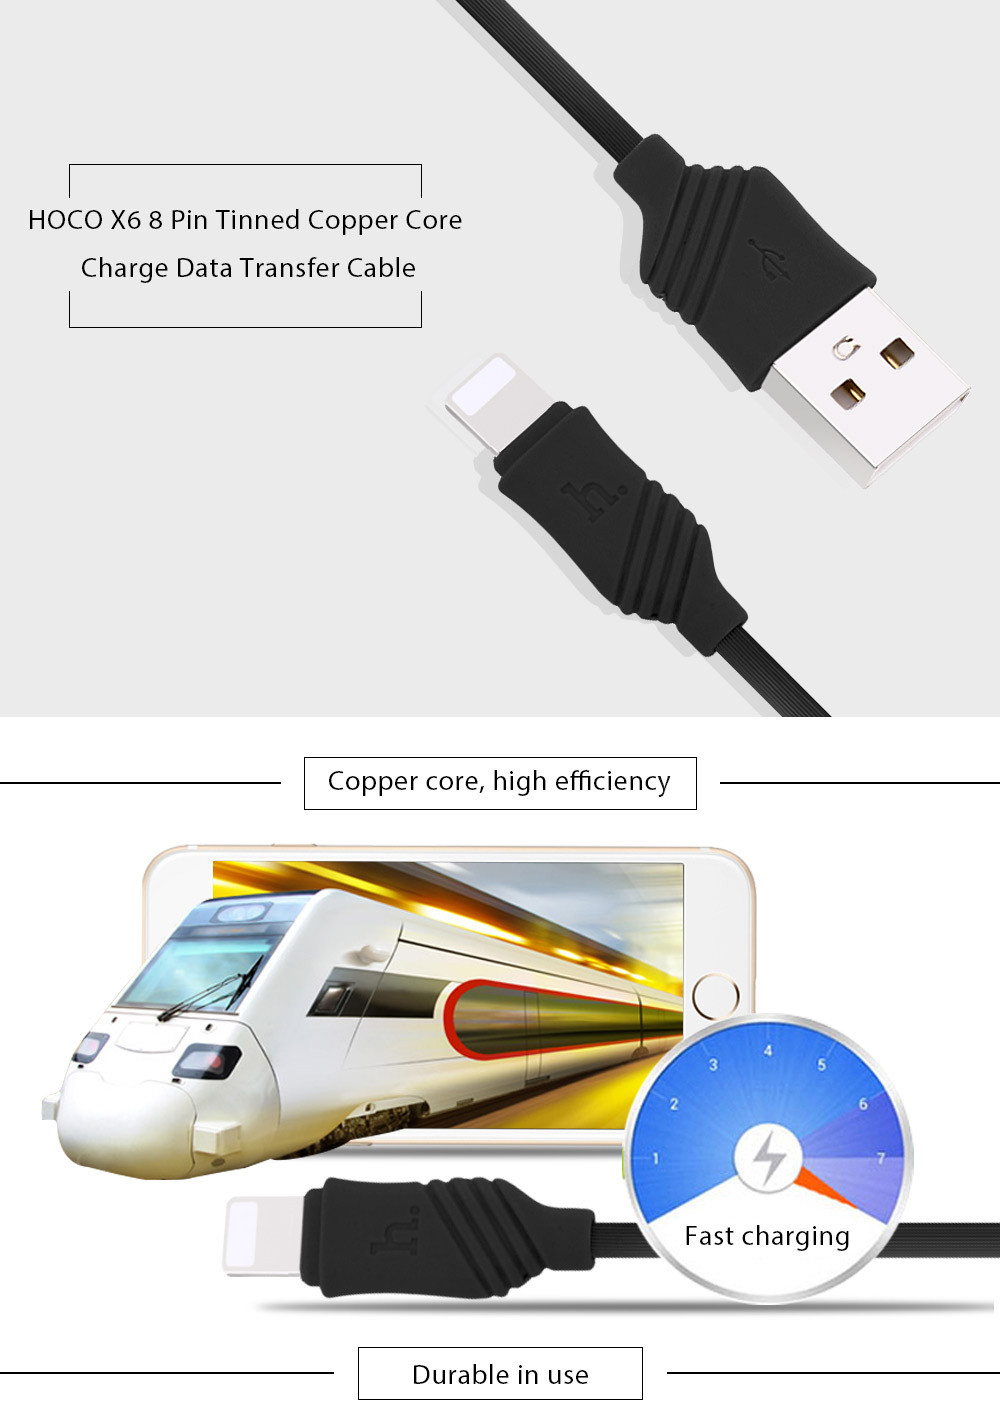 HOCO X6 5V 2.4A 8 Pin Tinned Copper Core Charge Data Transfer Cable 1M